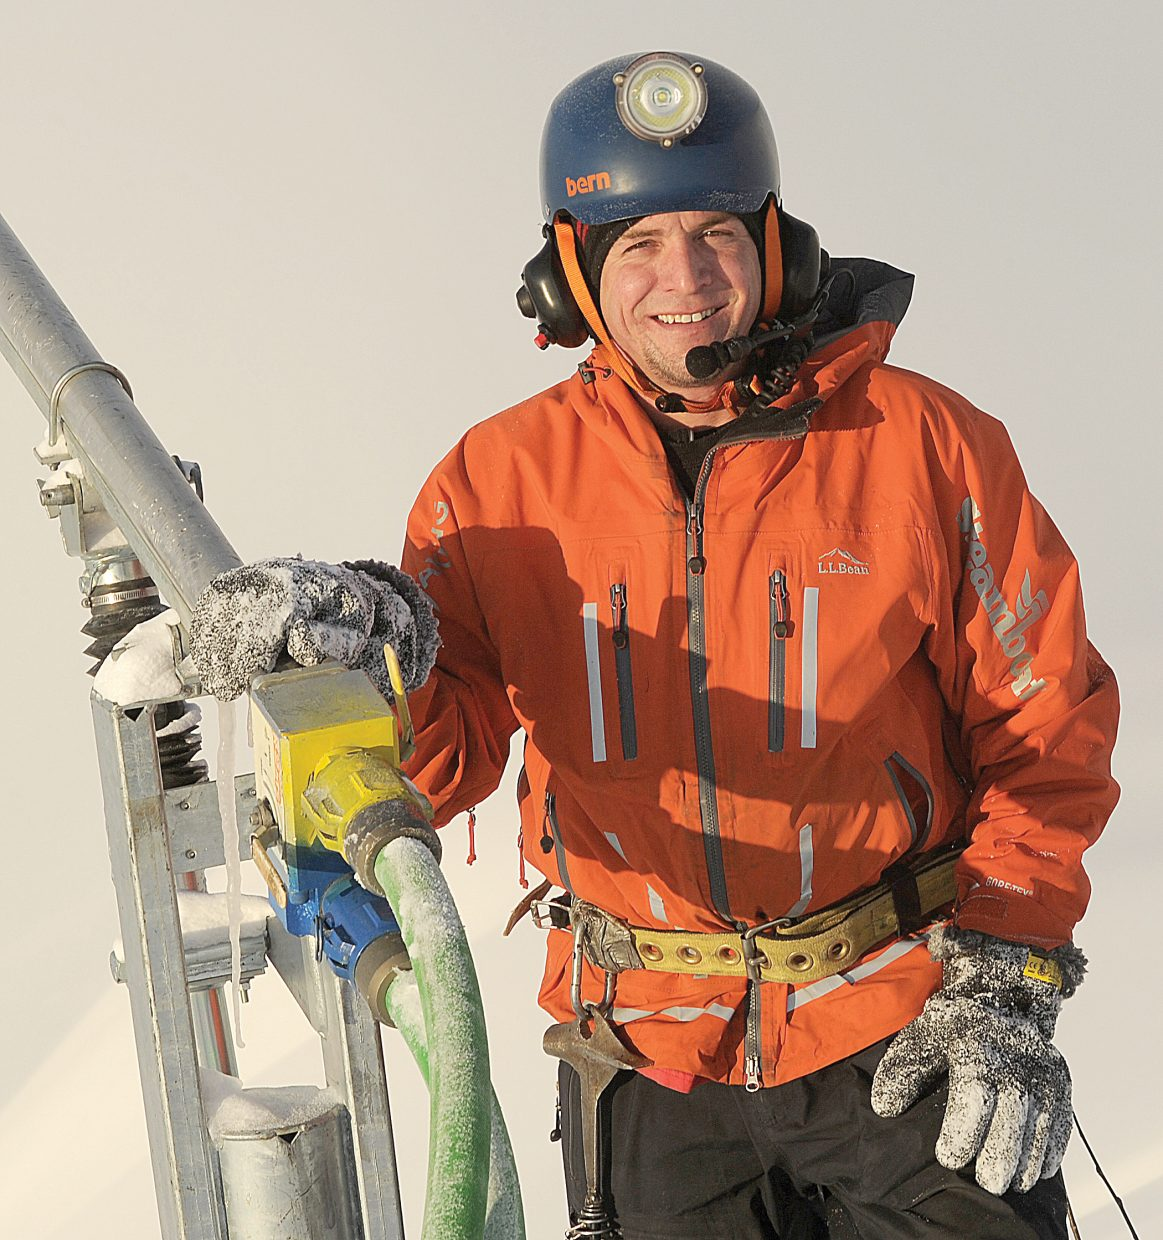 Steamboat Resort's Corey Peterson was named as one of the top six snowmakers in the country by Ski Area Management magazine in 2014.